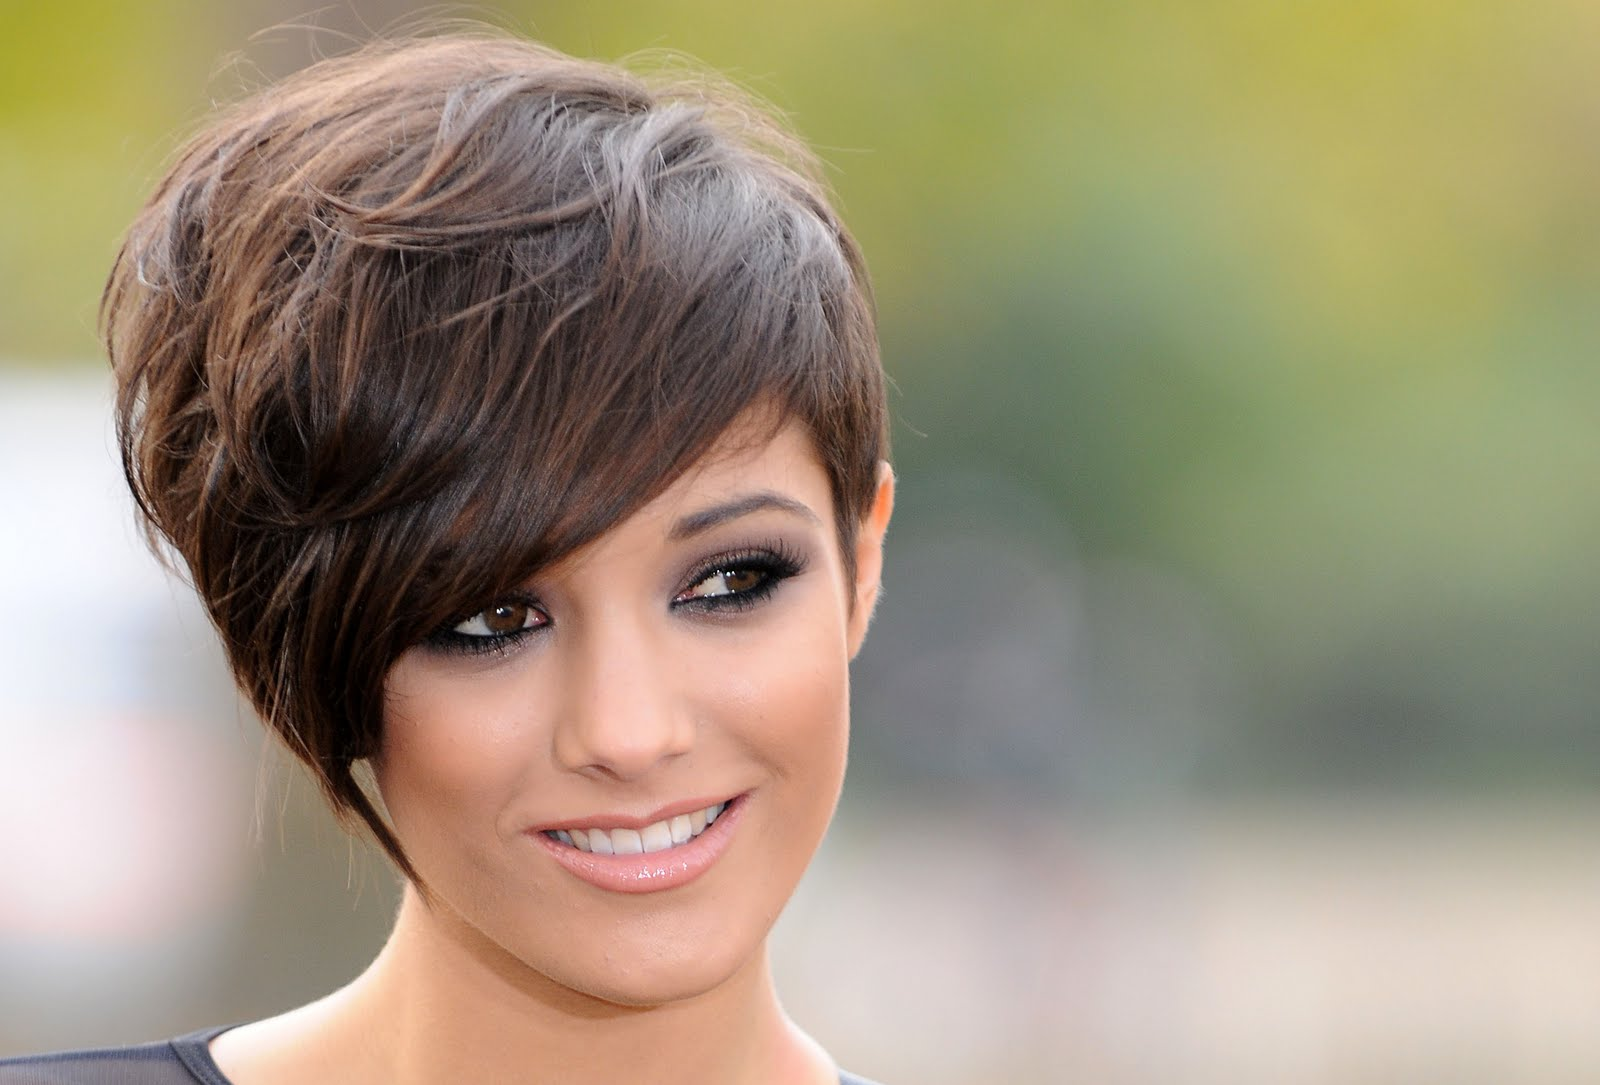 Pixie-With-Side-Fringes Celebrity Short Hairstyles for Glamorous Look